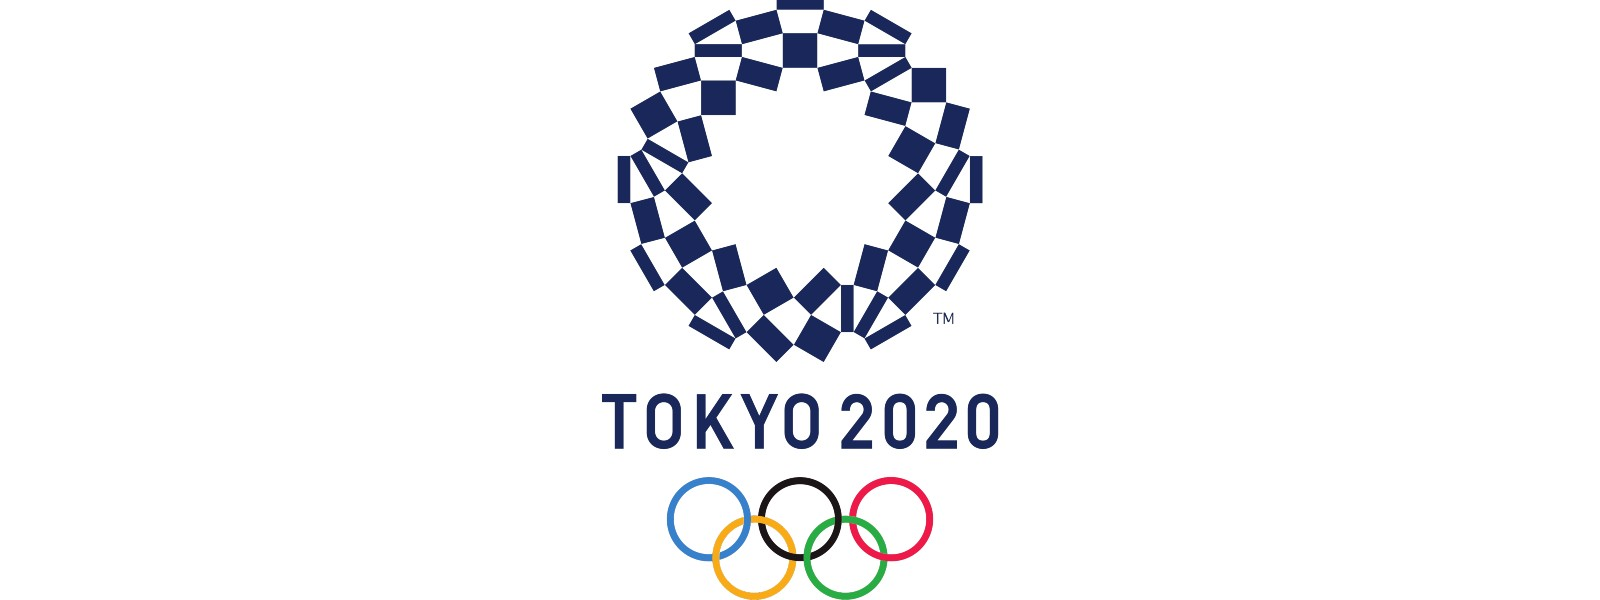 SLAF represented at Tokyo Olympics in Judo and Athletics